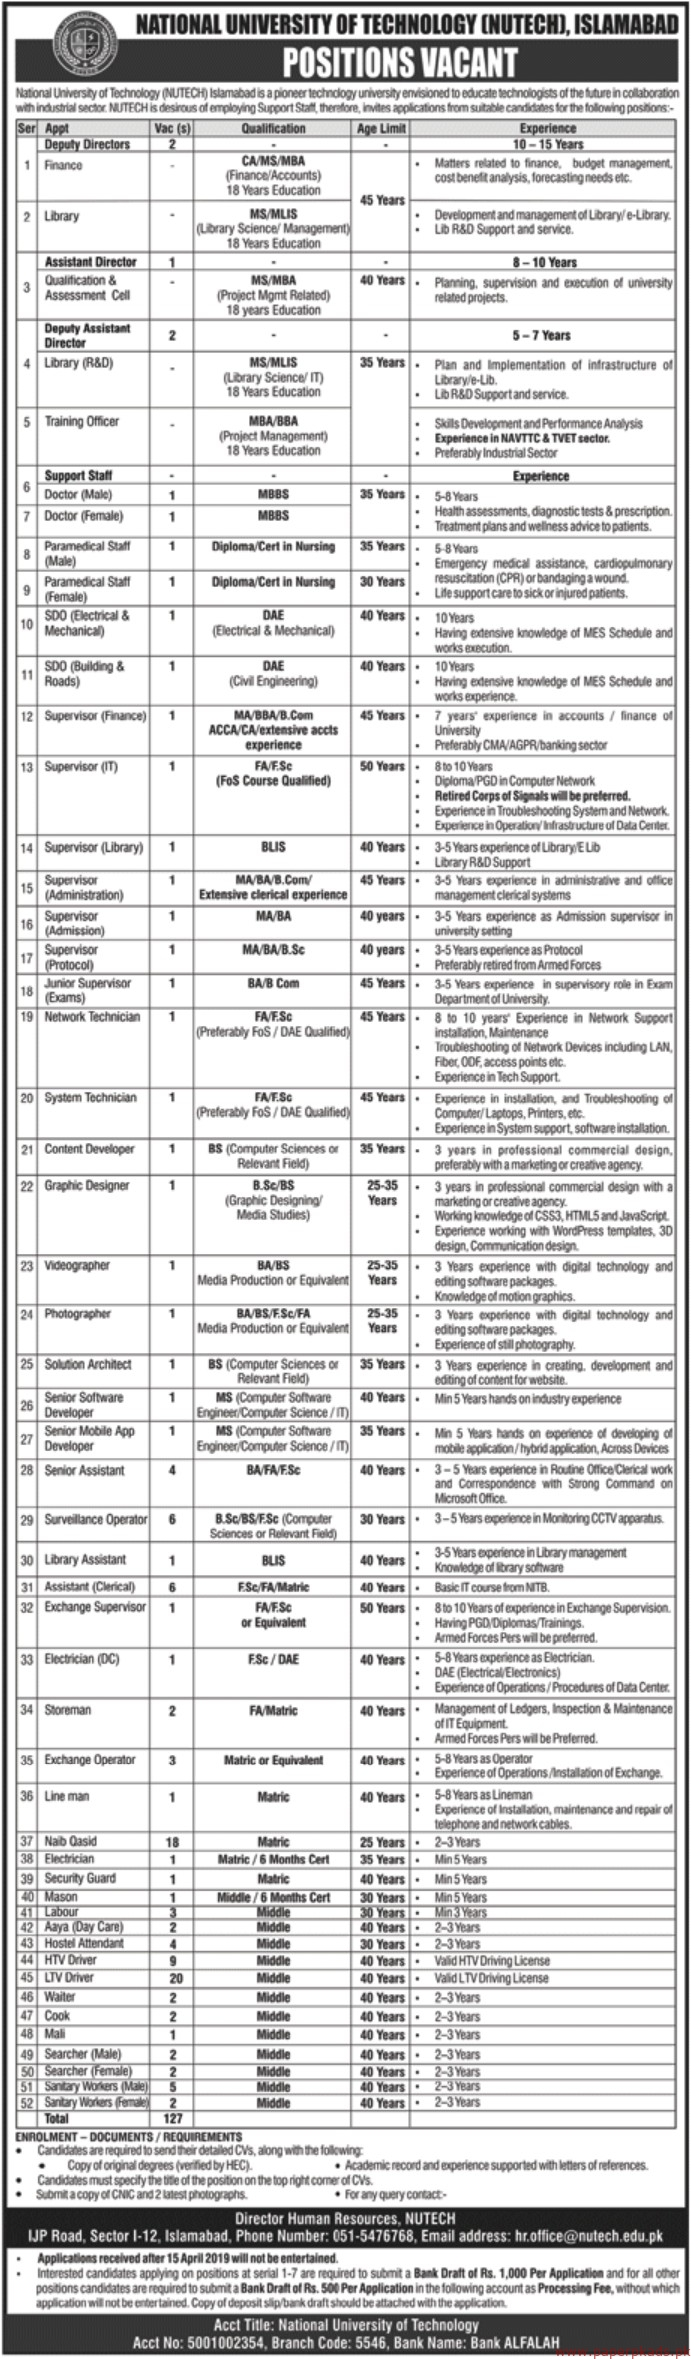 National University of Technology Jobs 2019 Latest